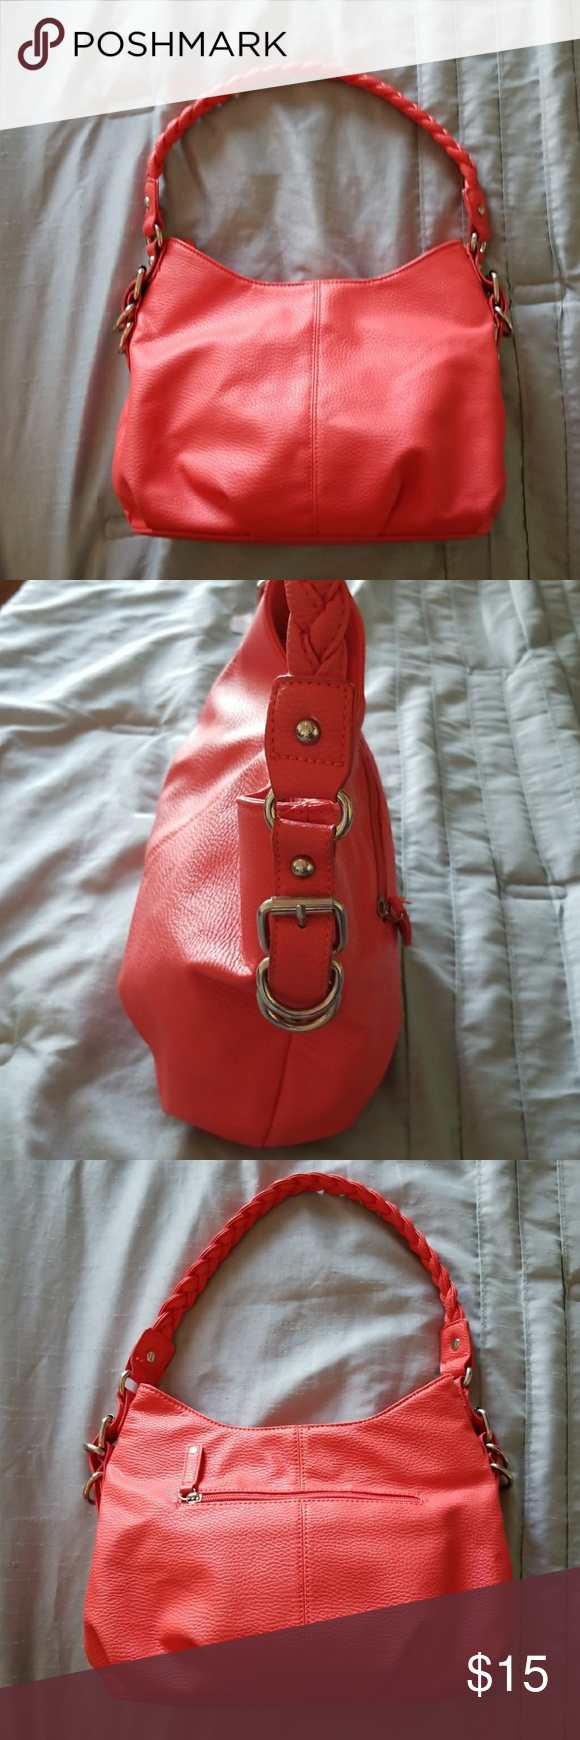 "Apt. 9 Coral Faux Leather Handbag Great summer bag!! Braided strap, slouch style, large inside, intimates zipper pockets, cell phone and lipstick pocket, outside zipper on back, silver hardware, and in good condition!! No major flaws, but light signs of use. 13""X8"", 9"" drop, and 17.5"" strap. Apt.9 Bags"